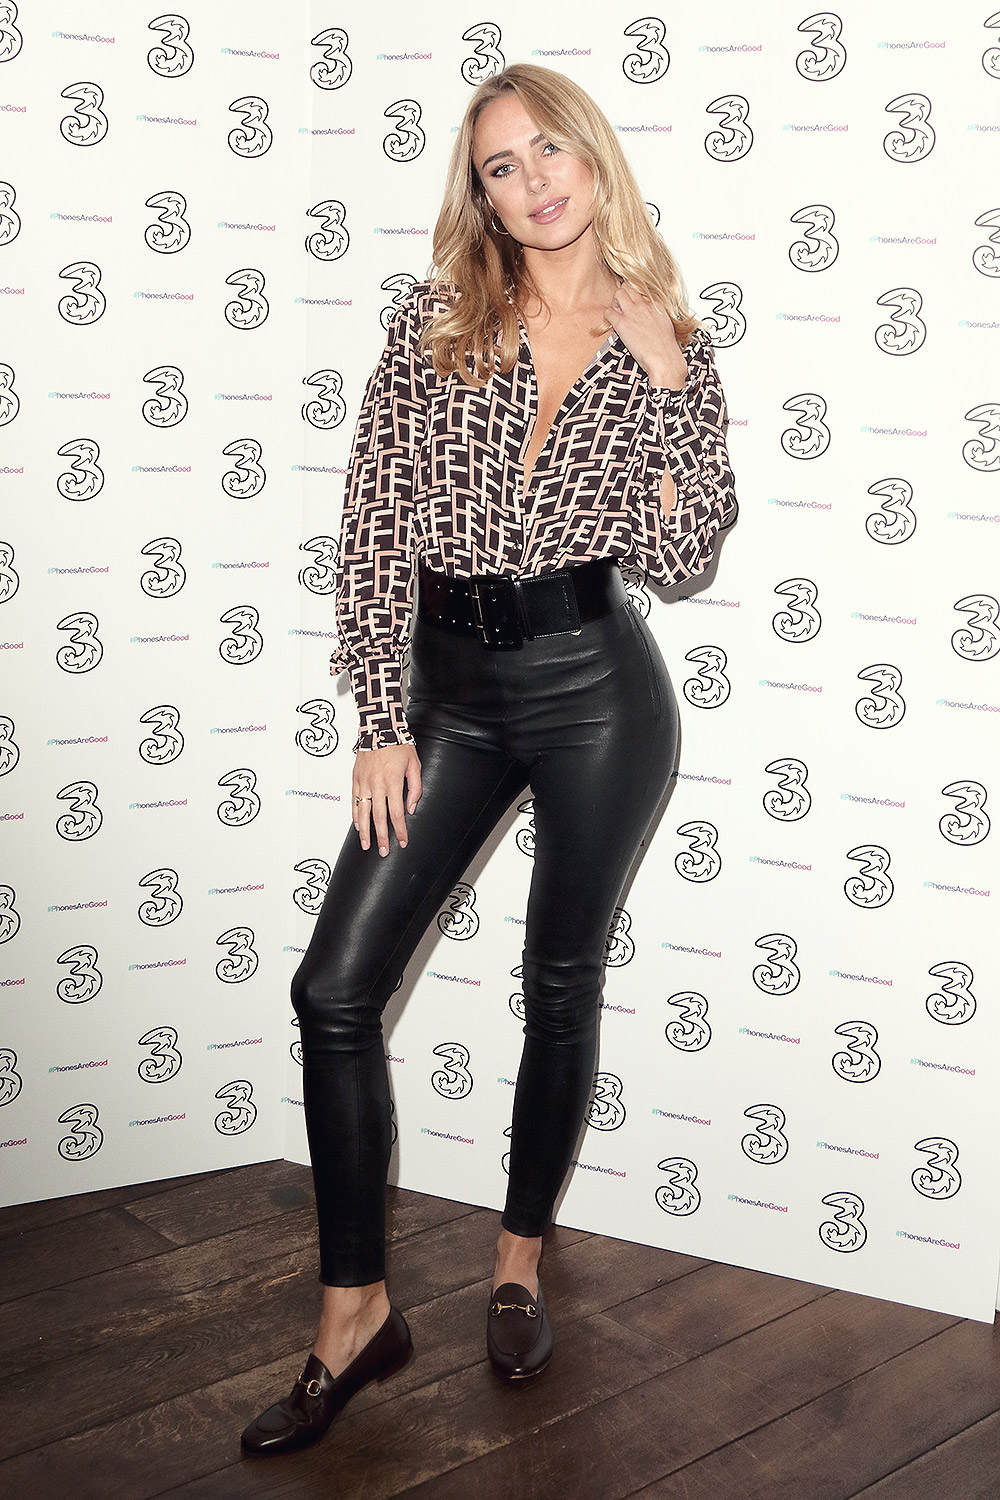 Kimberley Garner attends Portr8's Three Mobiles VIP Gallery Launch